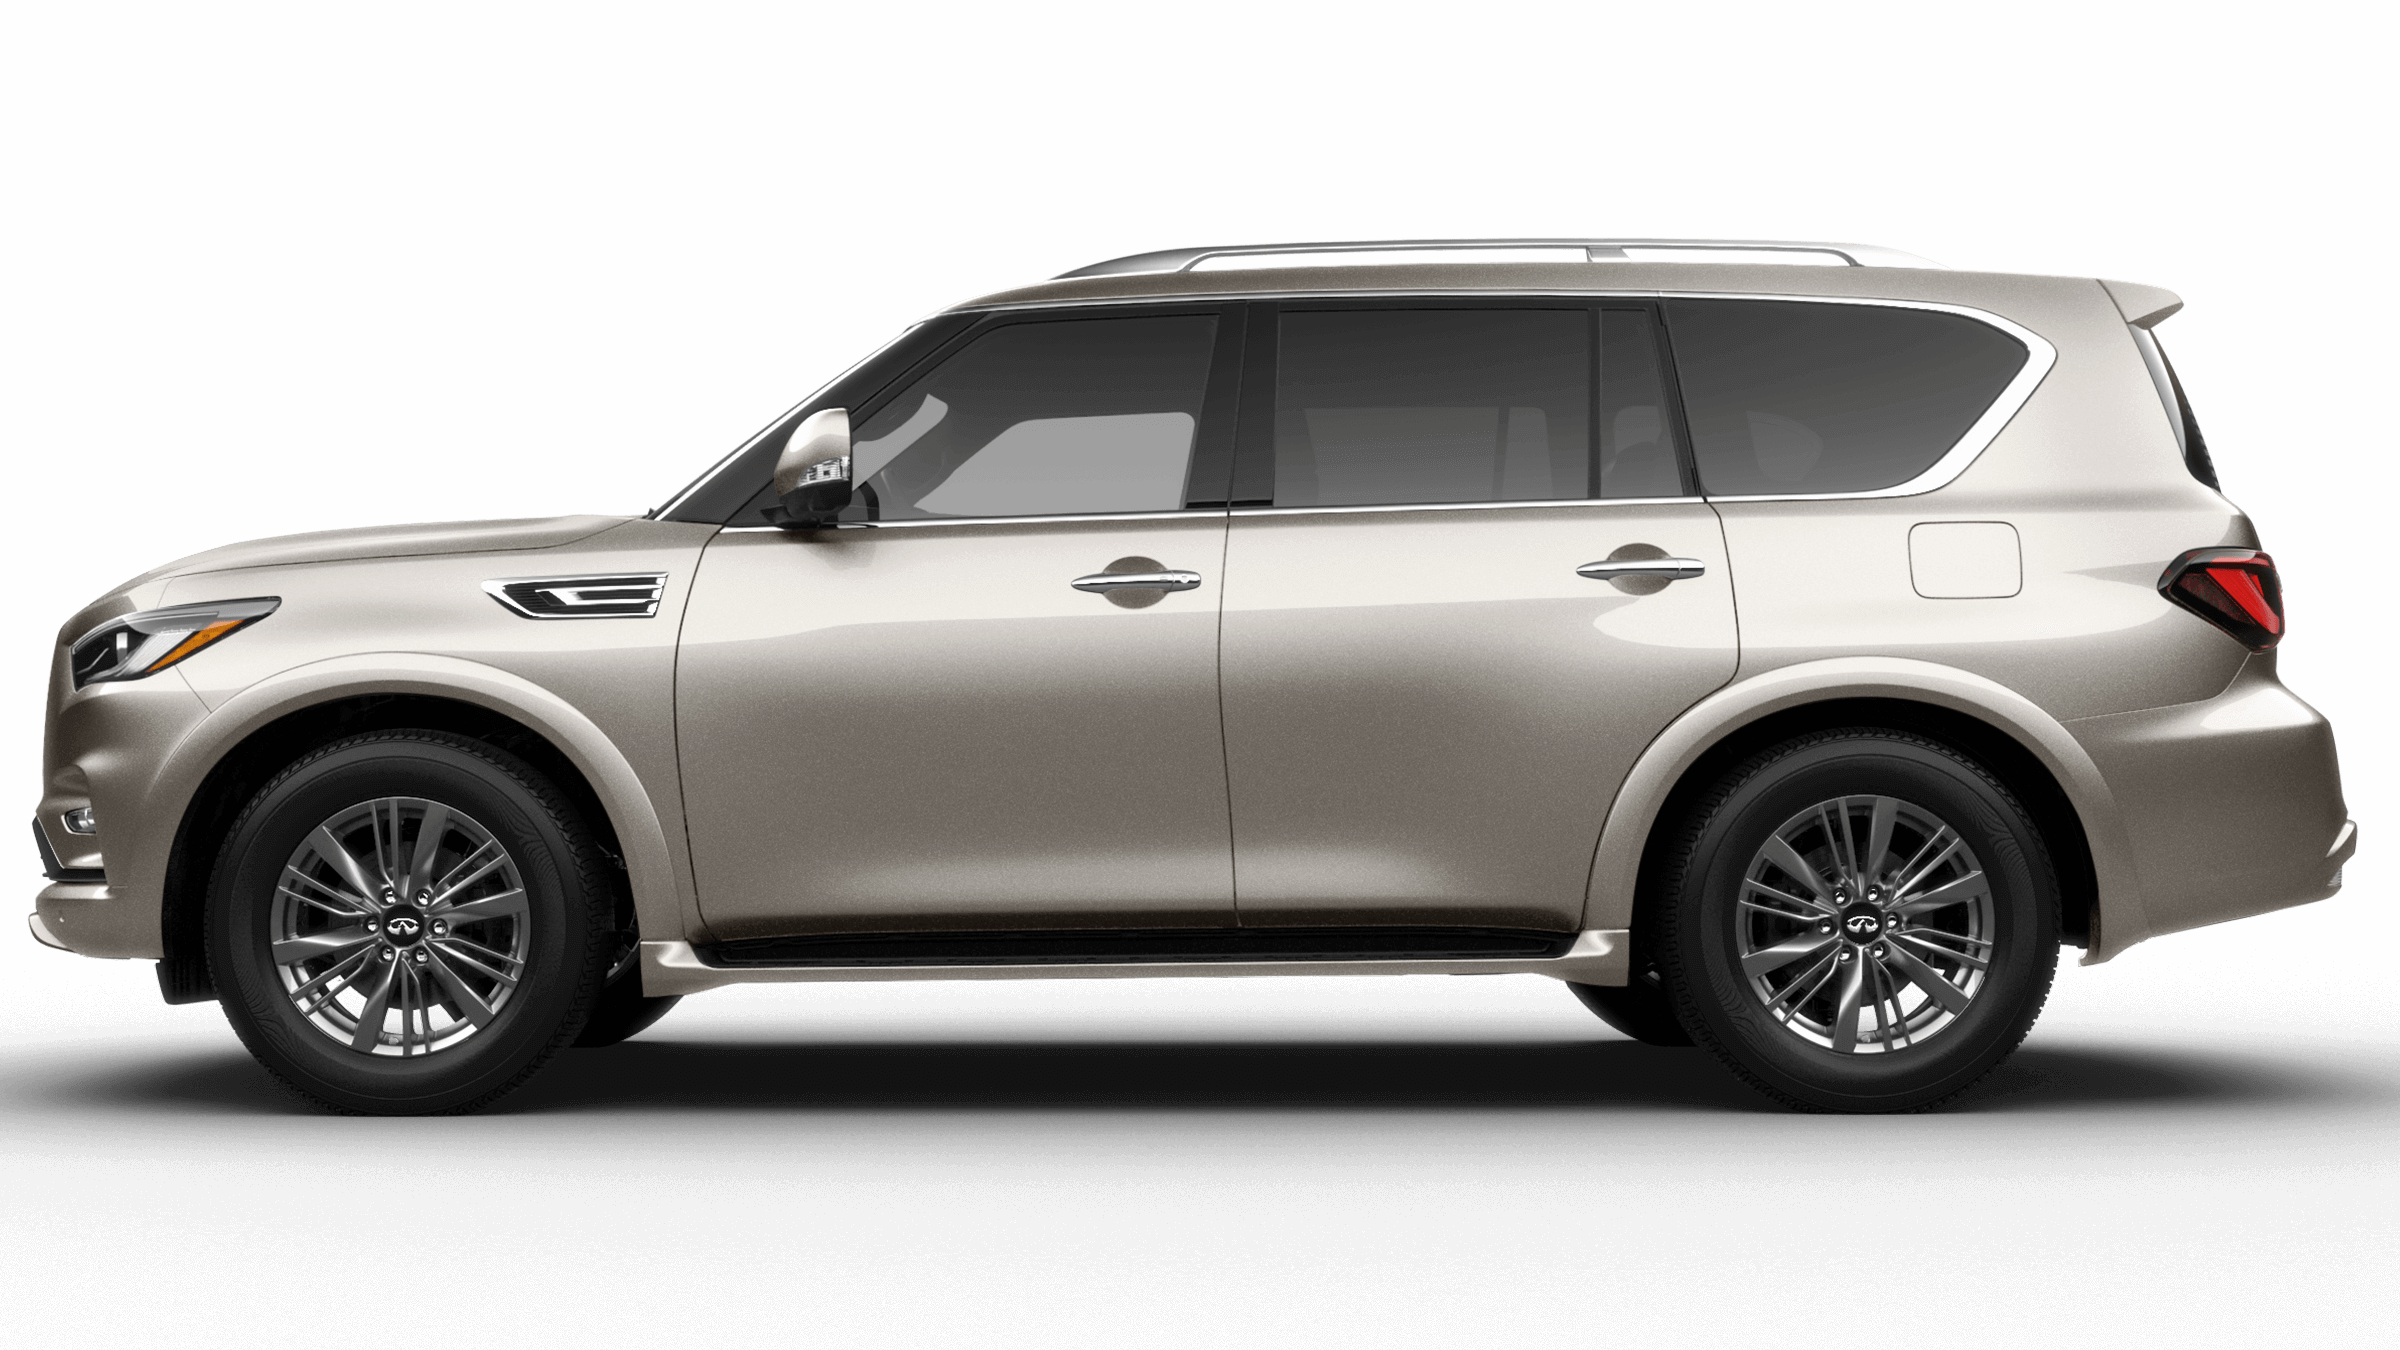 New 2021 Infiniti Qx80 Pure AWD model for sale at Oxnard Infiniti dealership near Simi Valley, CA